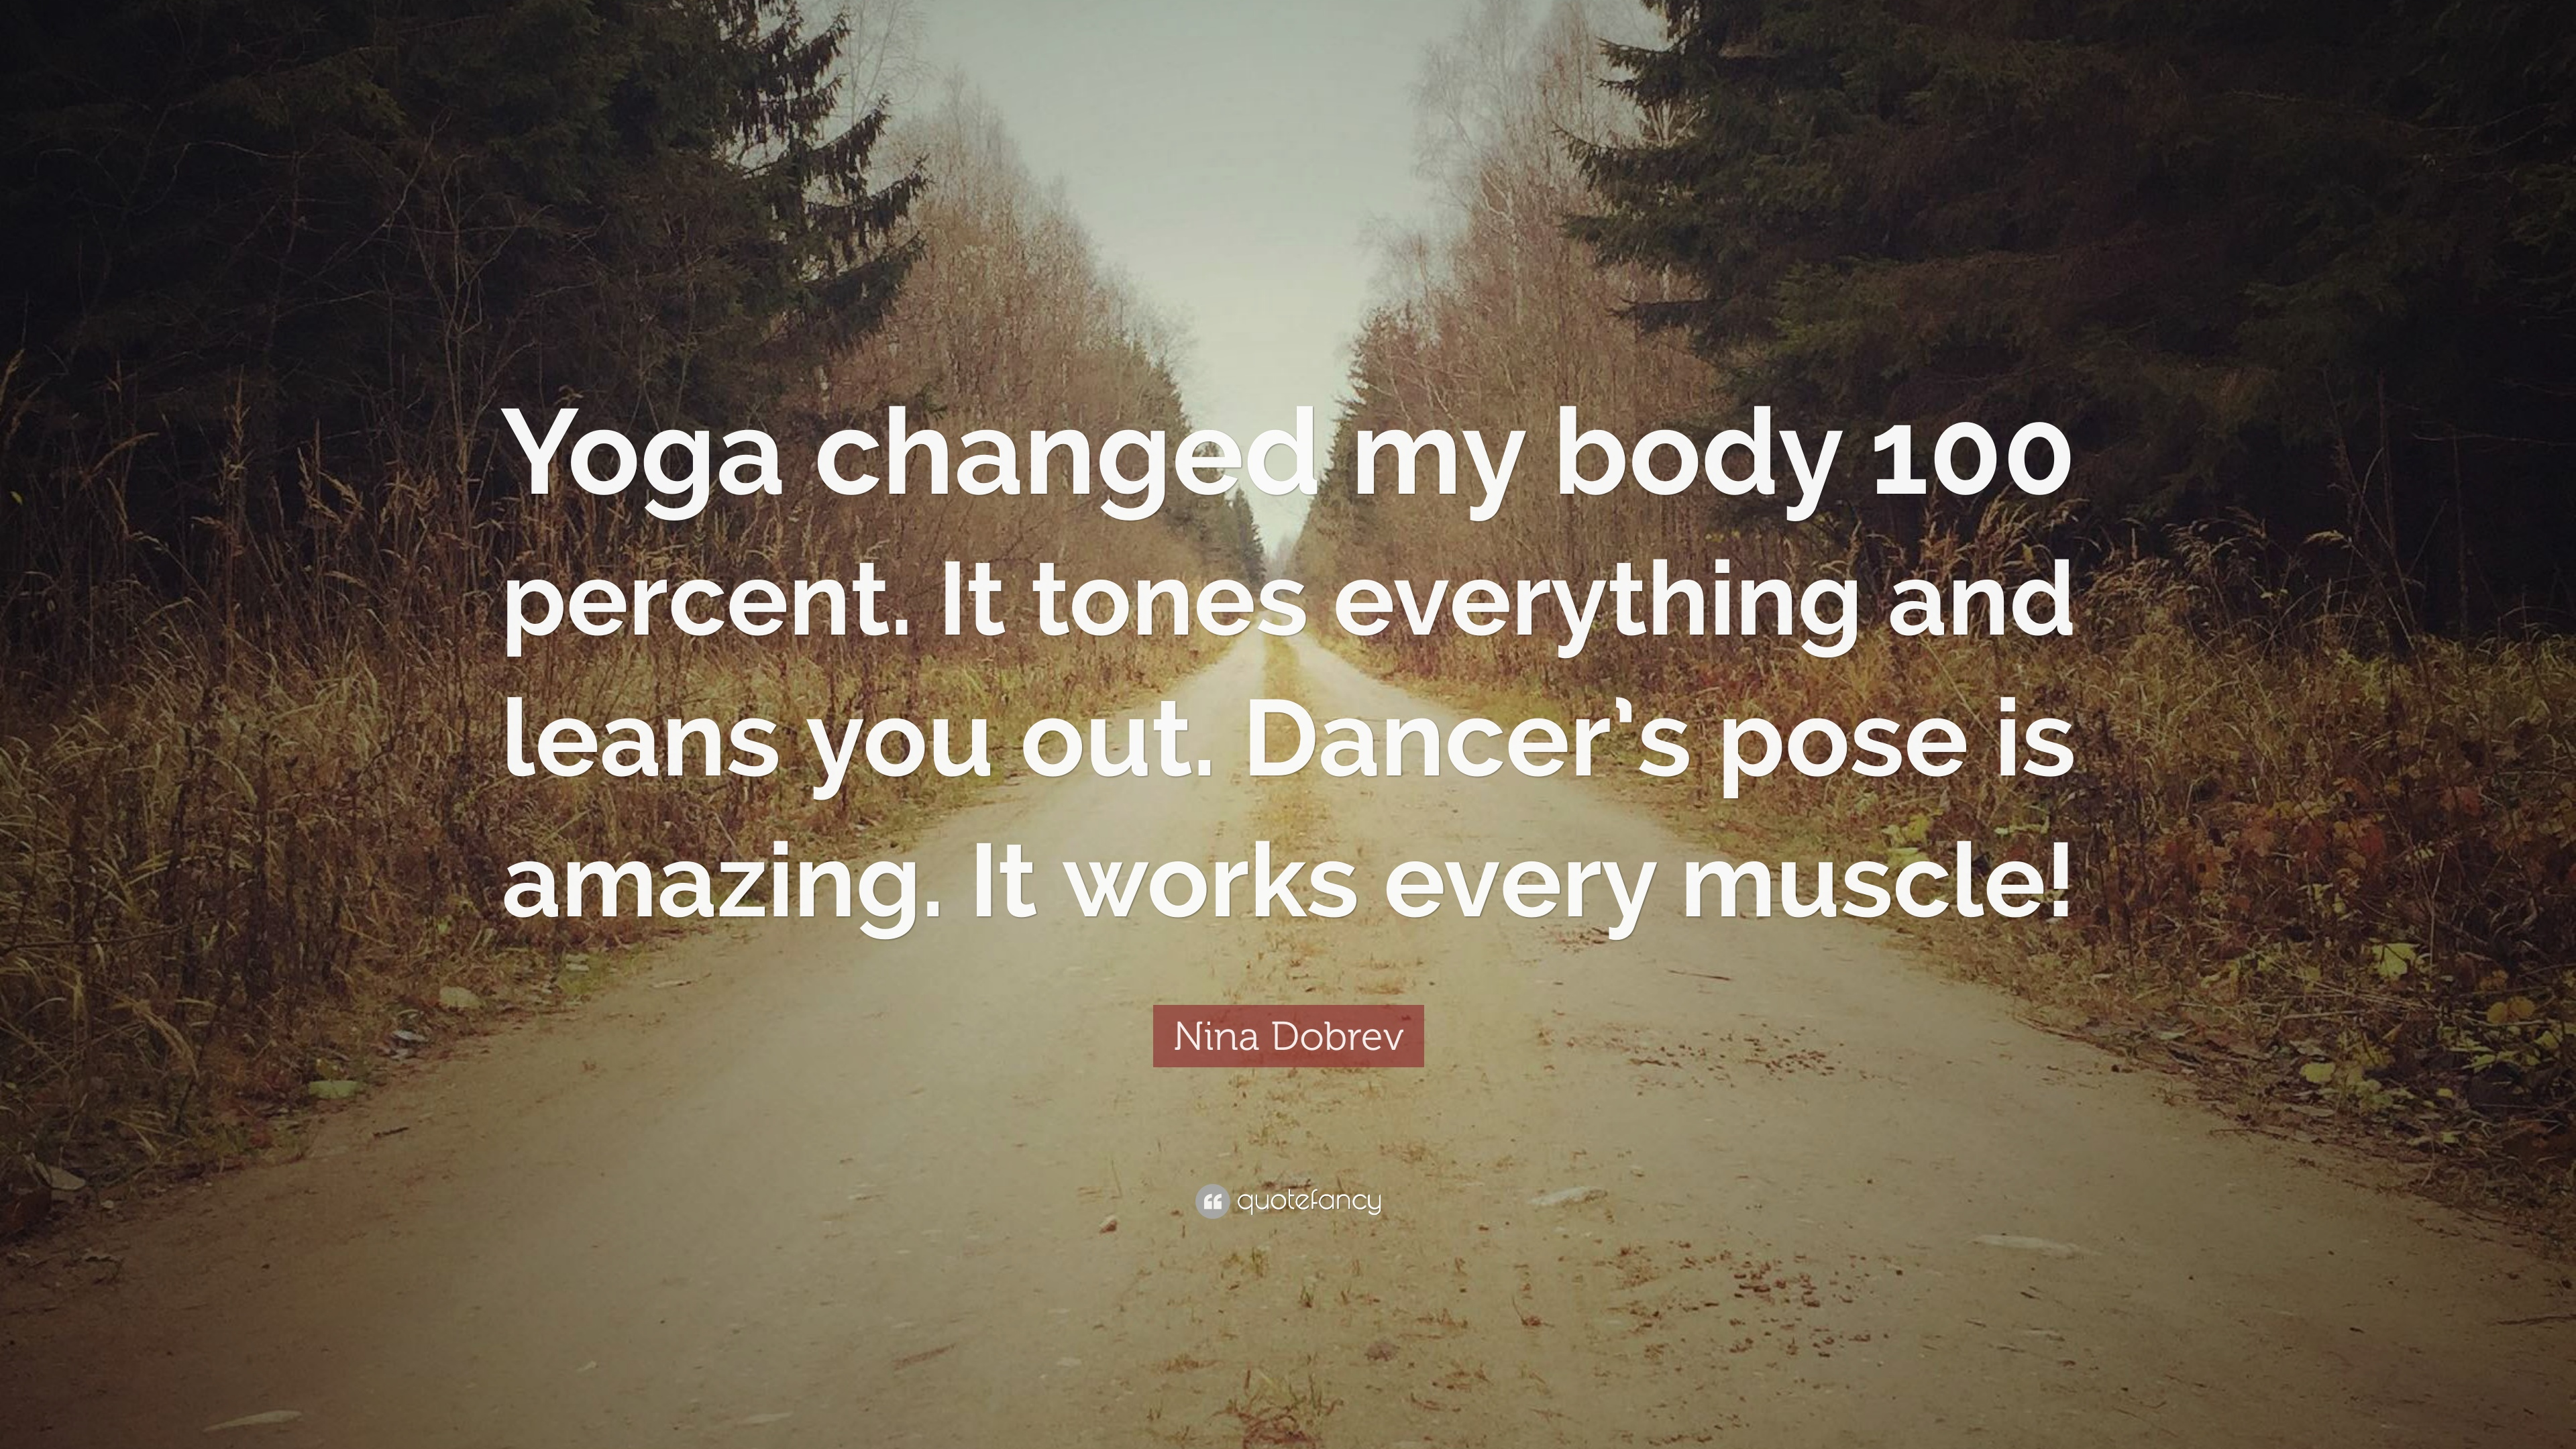 Nina Dobrev Quote Yoga Changed My Body 100 Percent It Tones Everything And Leans You Out Dancer S Pose Is Amazing It Works Every Muscle 7 Wallpapers Quotefancy